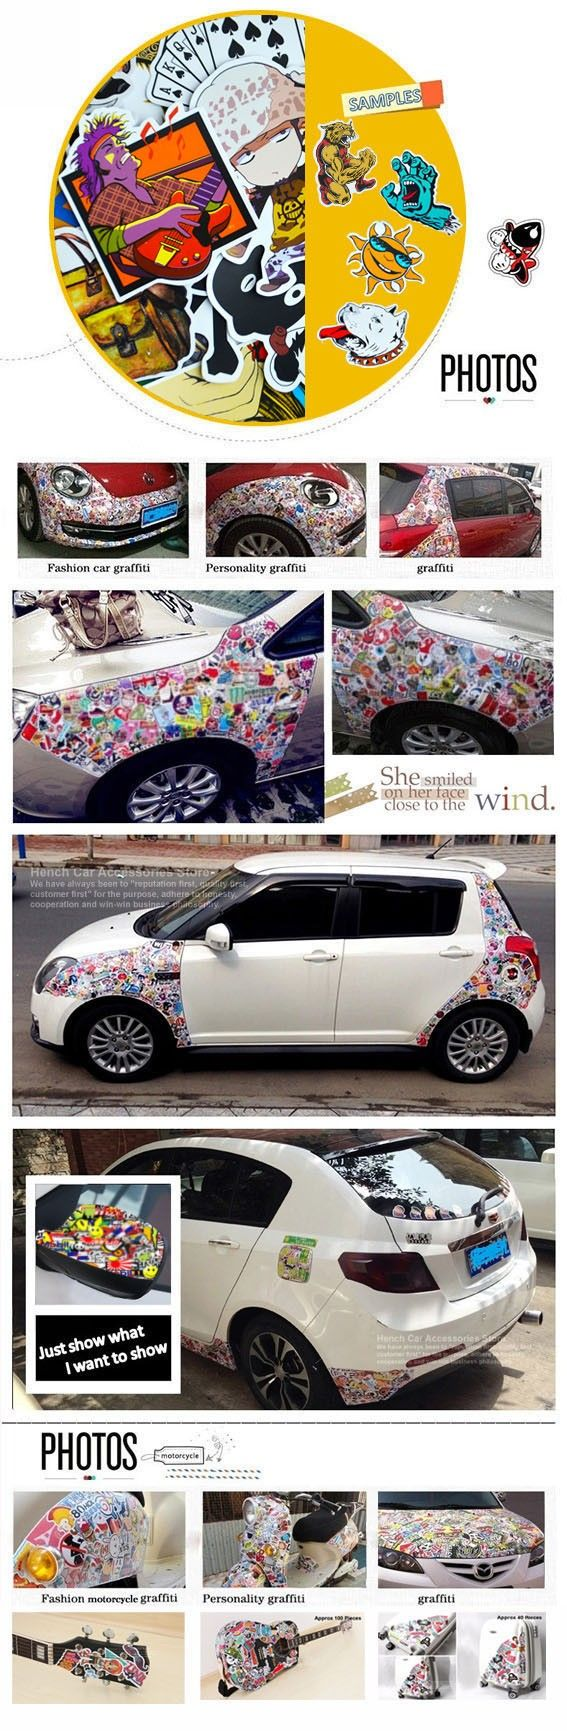 Car club sticker designs - Car Styling Doodle Sticker Bomb Graffiti Skateboard Stickers Snowboard Motorcycle Bicycle Luggage Bags Accessories Guitar Decal